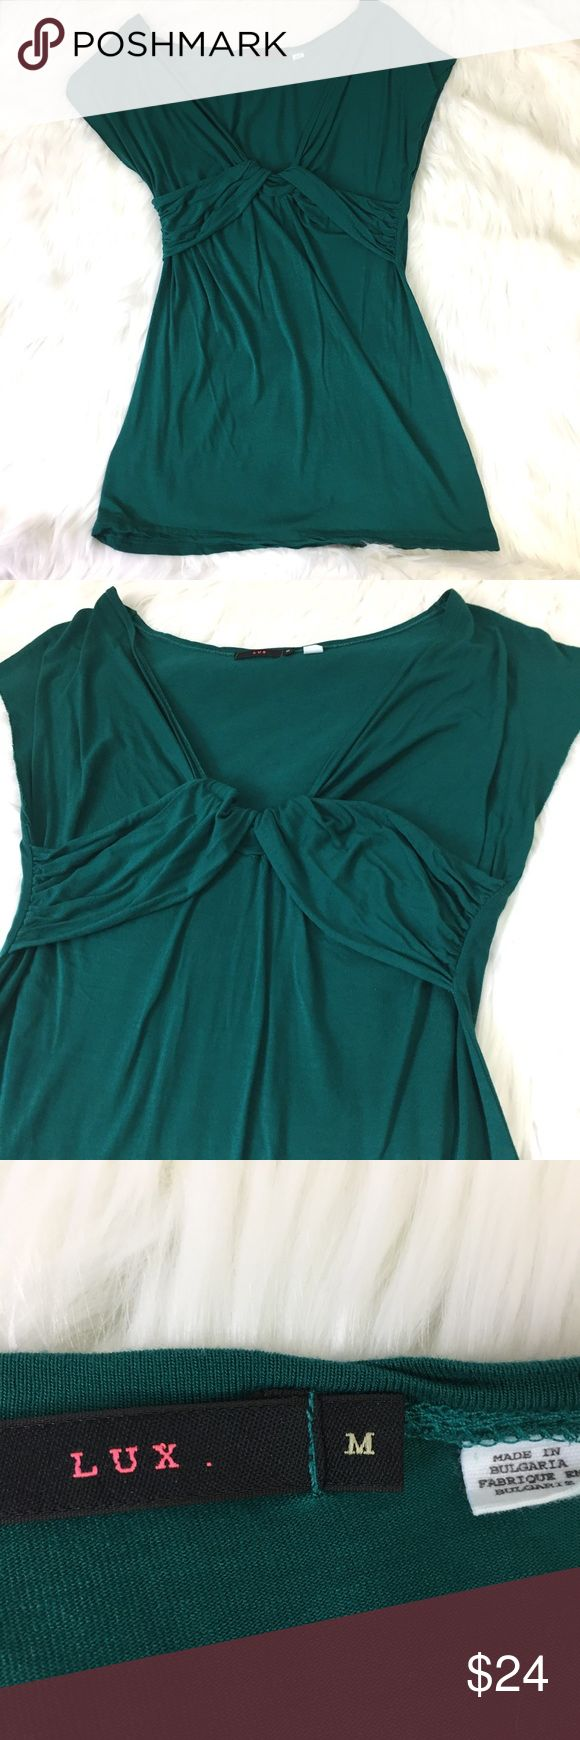 "Anthropologie lux viscose emerald green tee size M Figure flattering viscose tee by Lux for Anthropologie size M.  Approximate flat lay measurements: armpit to armpit 15.5"", center of neckline to hem 21"".  Unfinished edge sleeves, draping under bustling. Anthropologie Tops Tees - Short Sleeve"